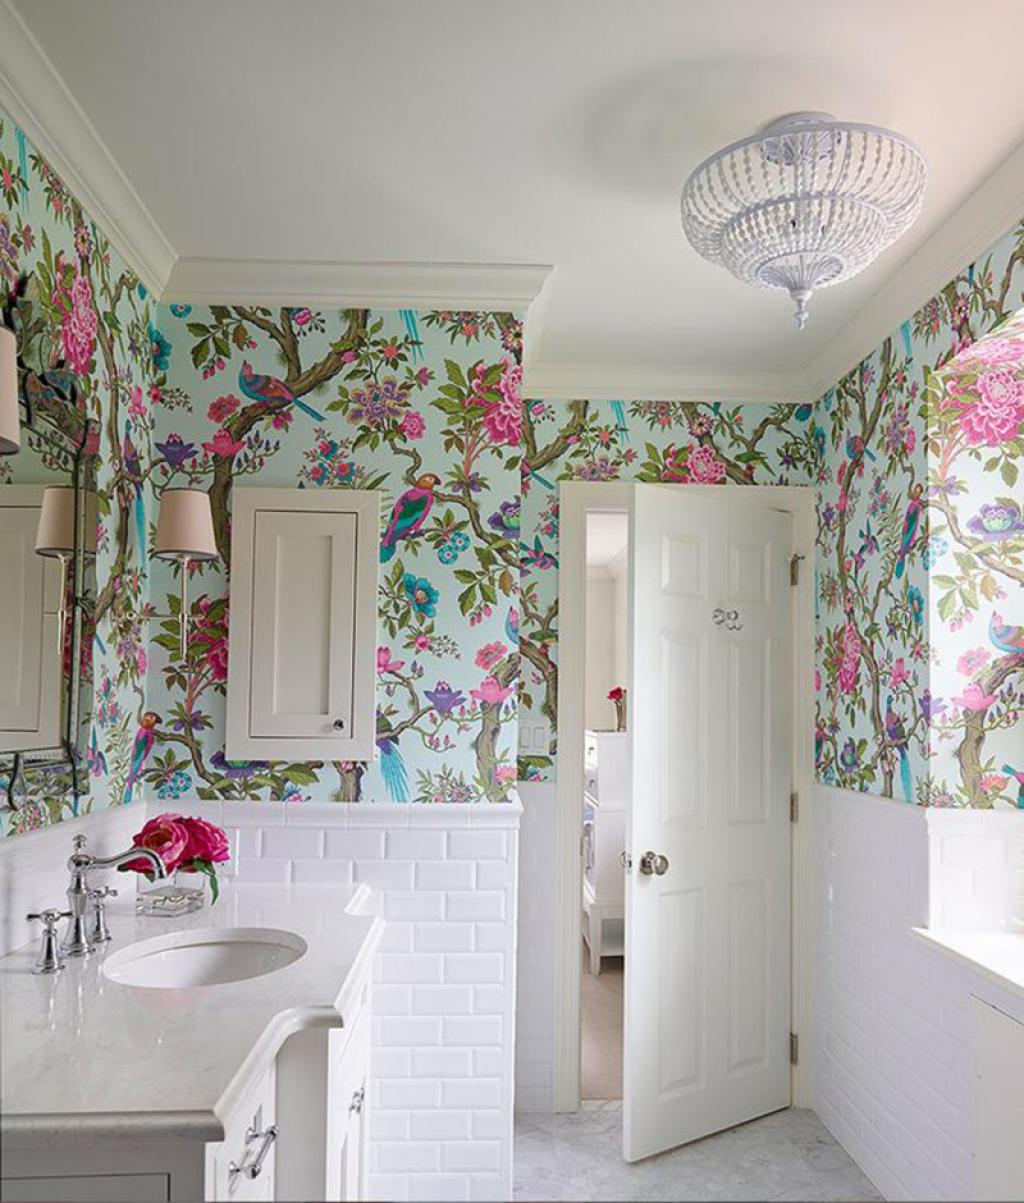 Floral royal bathroom wallpaper ideas on small white for Modern bathroom wallpaper